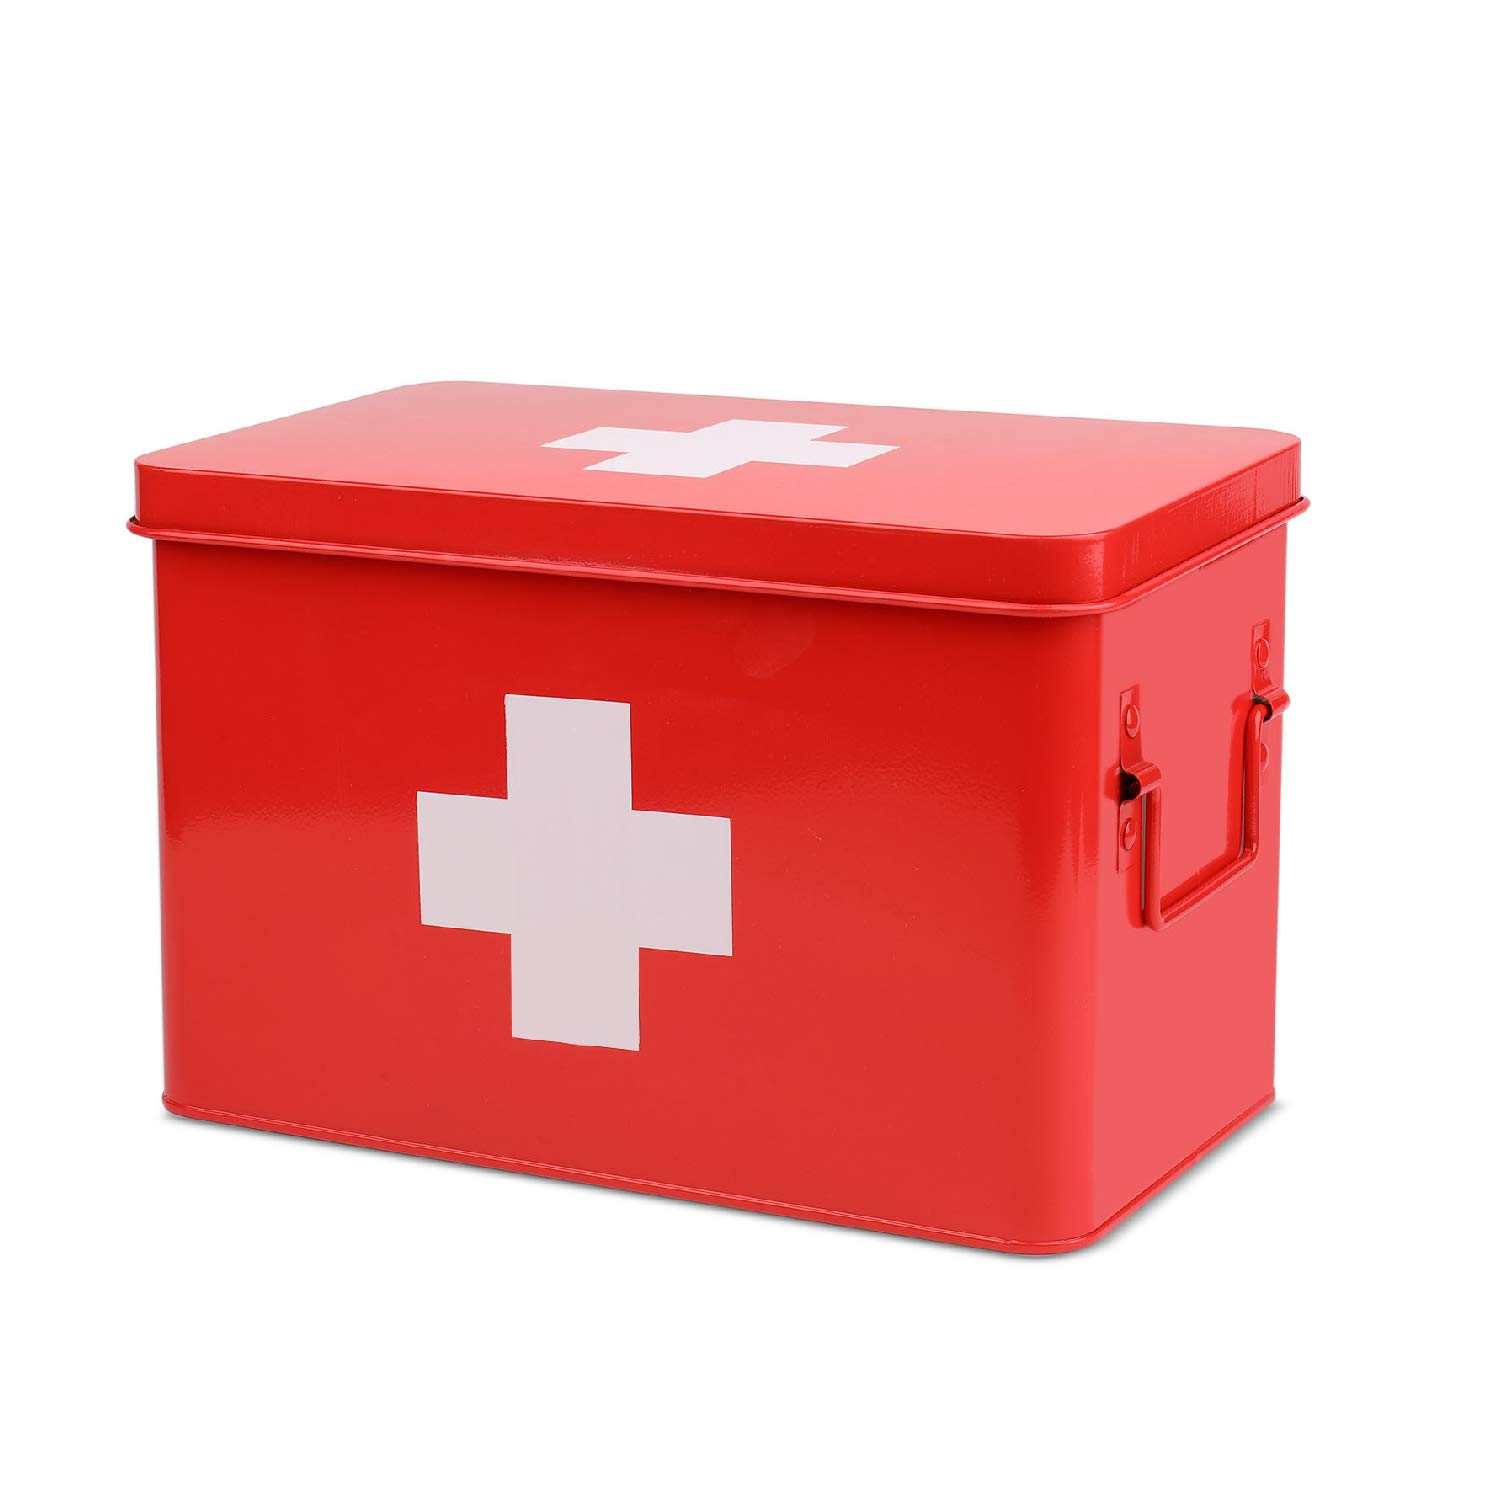 Flexzion Medicine Storage Box, Metal First Aid Box with Side Handles, Top Removable Tray & Separated Compartments for Prescriptions, Tools, Rations (Red) by Flexzion